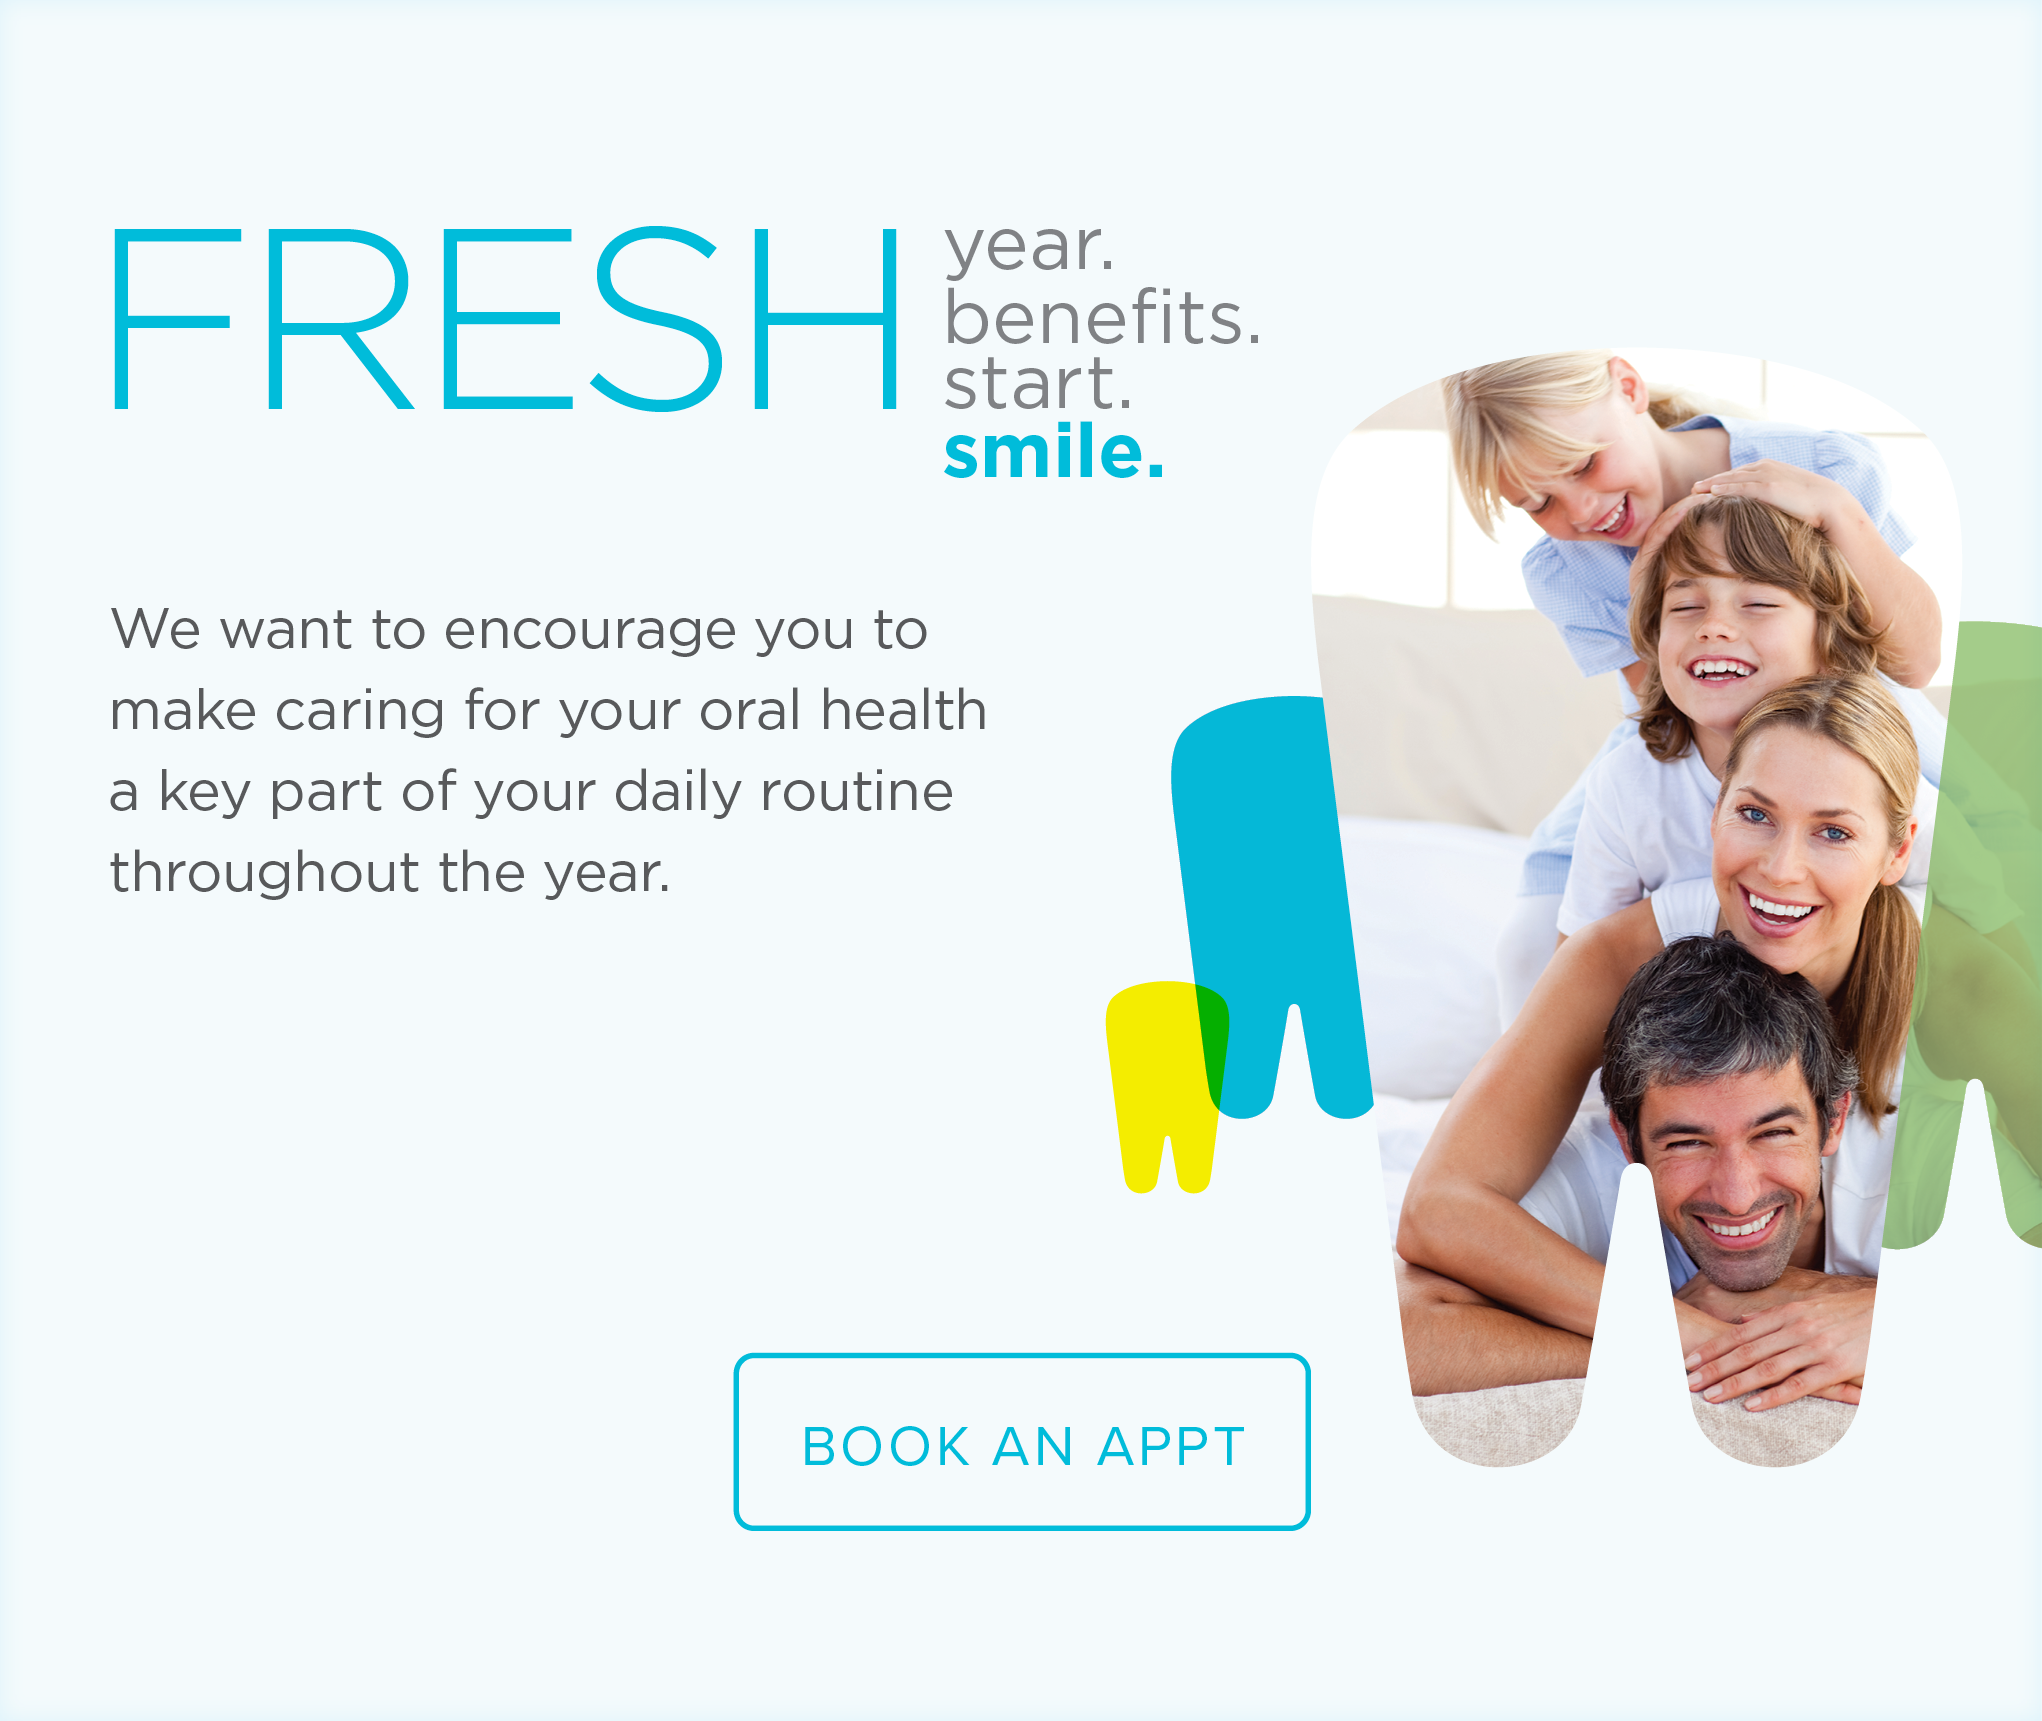 Canyon Pointe Dental Group - Make the Most of Your Benefits